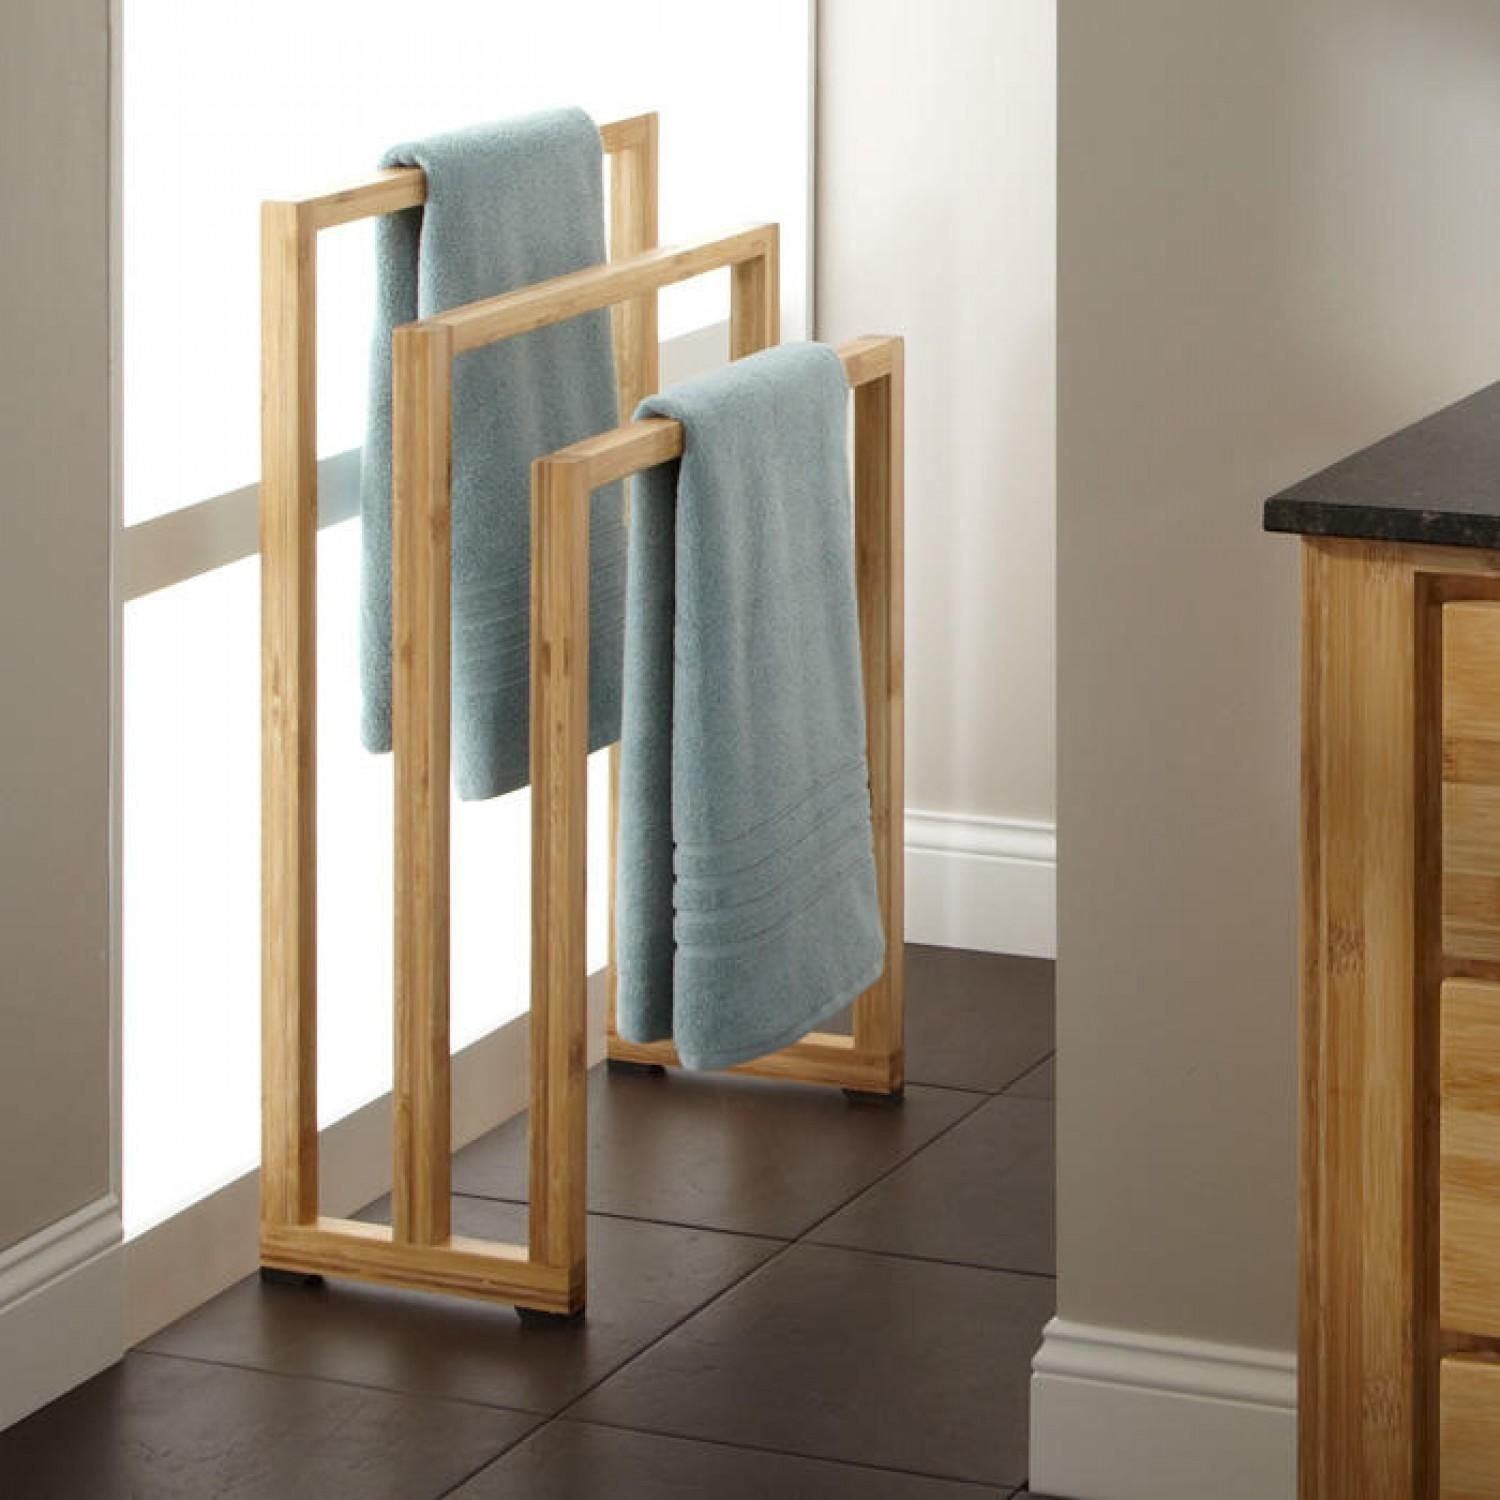 simple lines and contemporary design make the hailey teak towel rack asmart choice for drying towels swimsuits and other wet items. wooden towel rack  google search    pinterest  towel rail